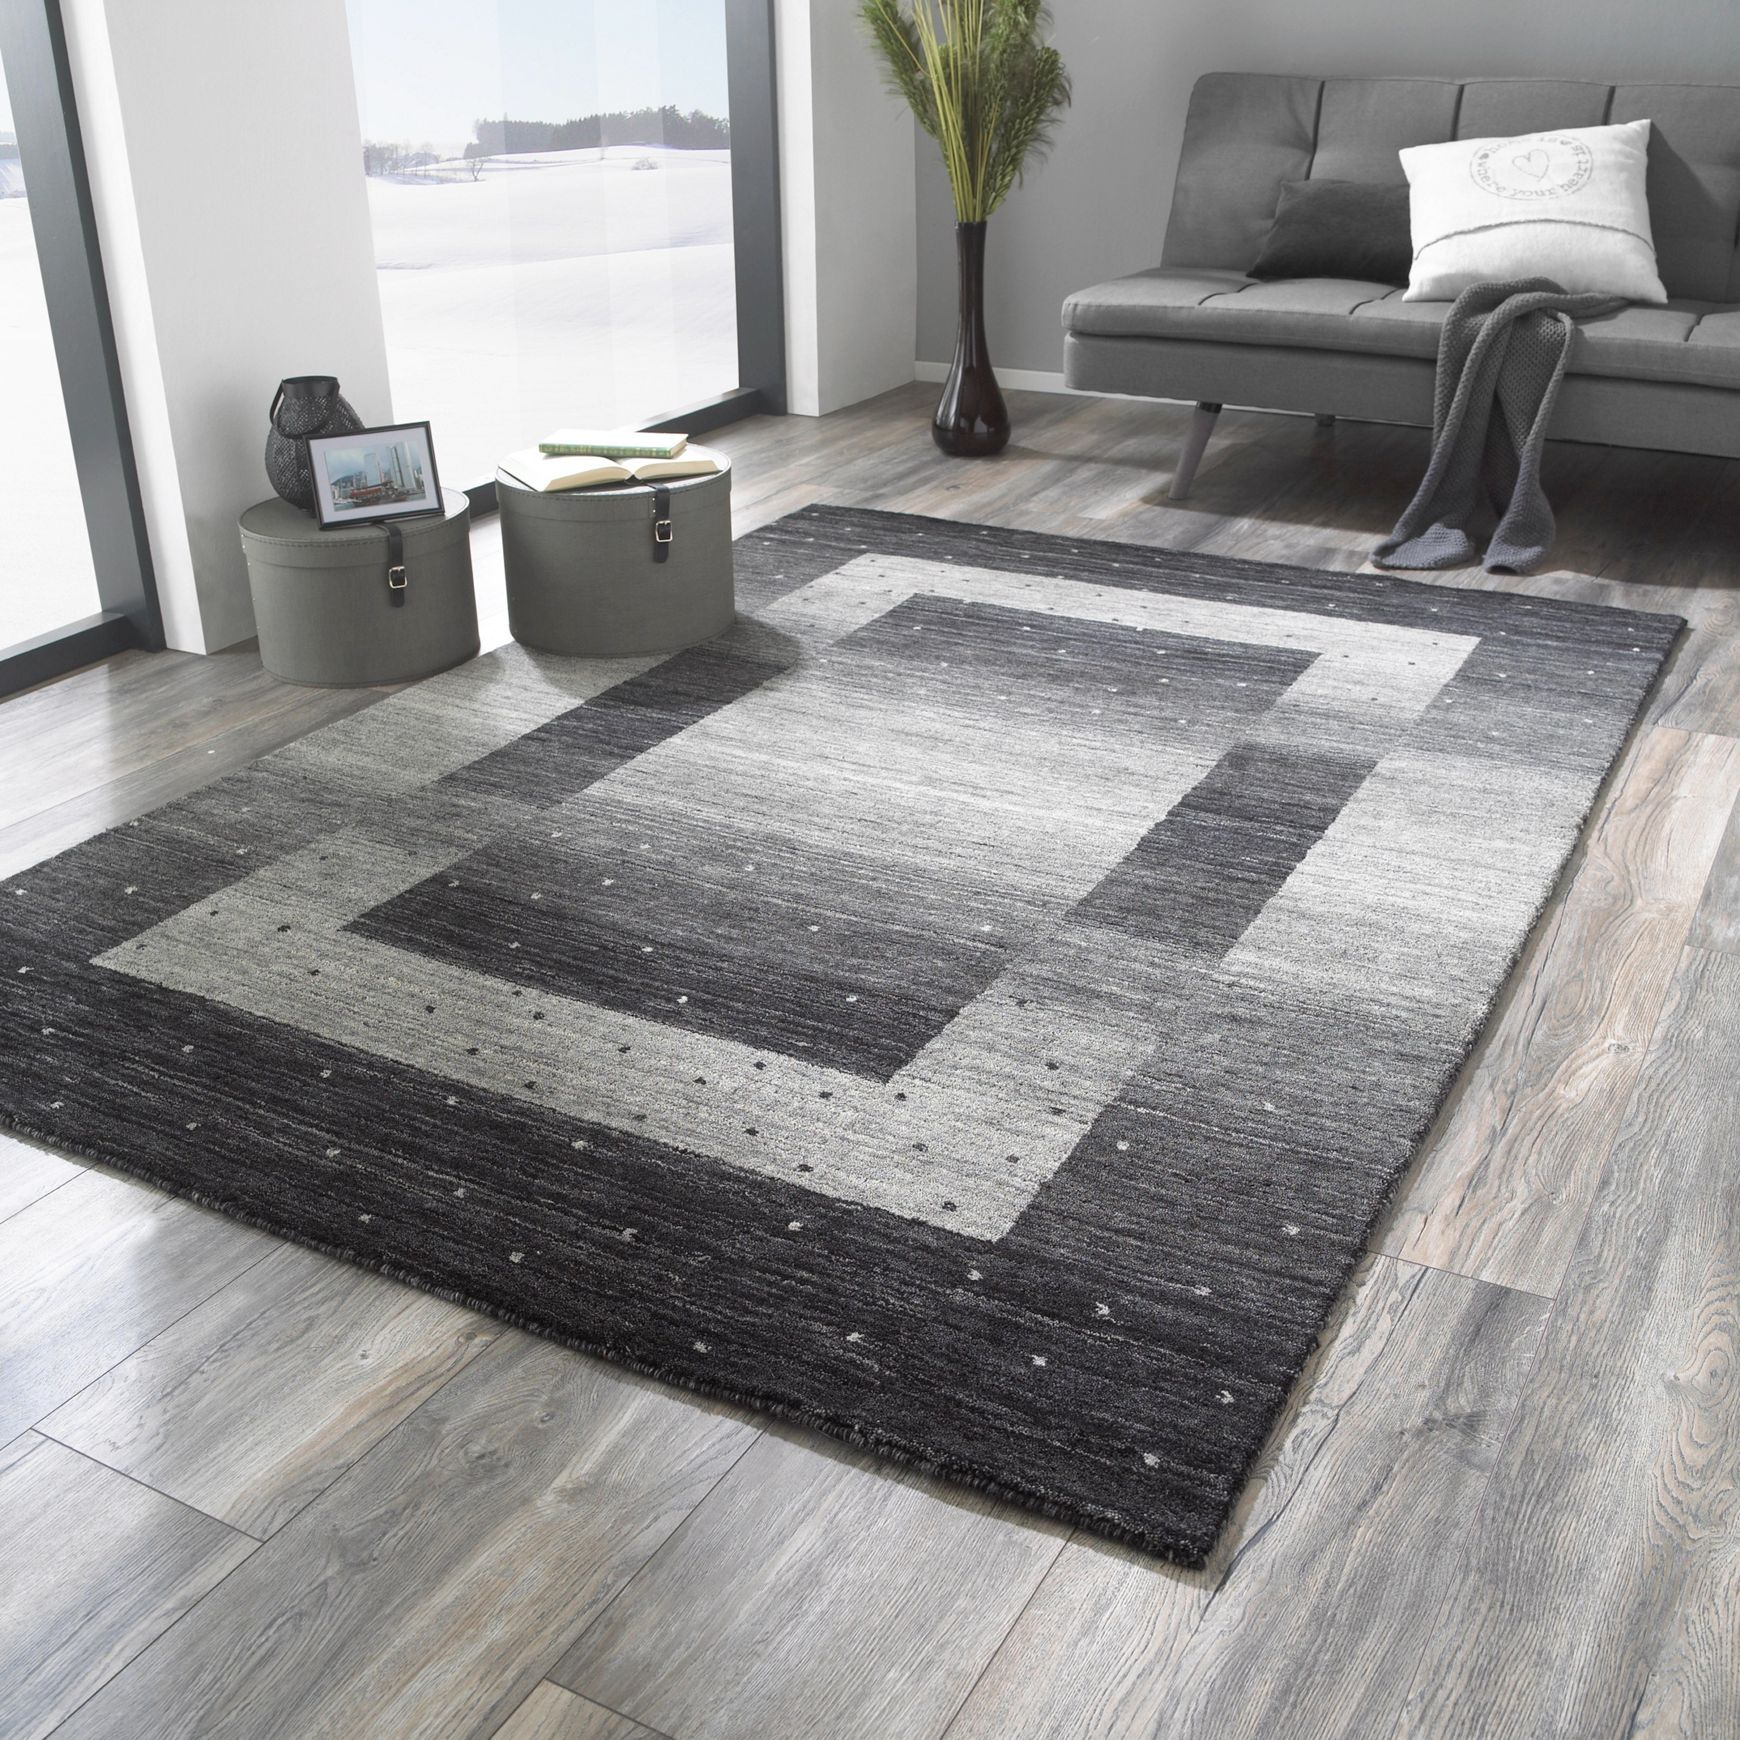 Orientteppich In Schwarz 160 230 Cm Contemporary Rug Decor Home Decor